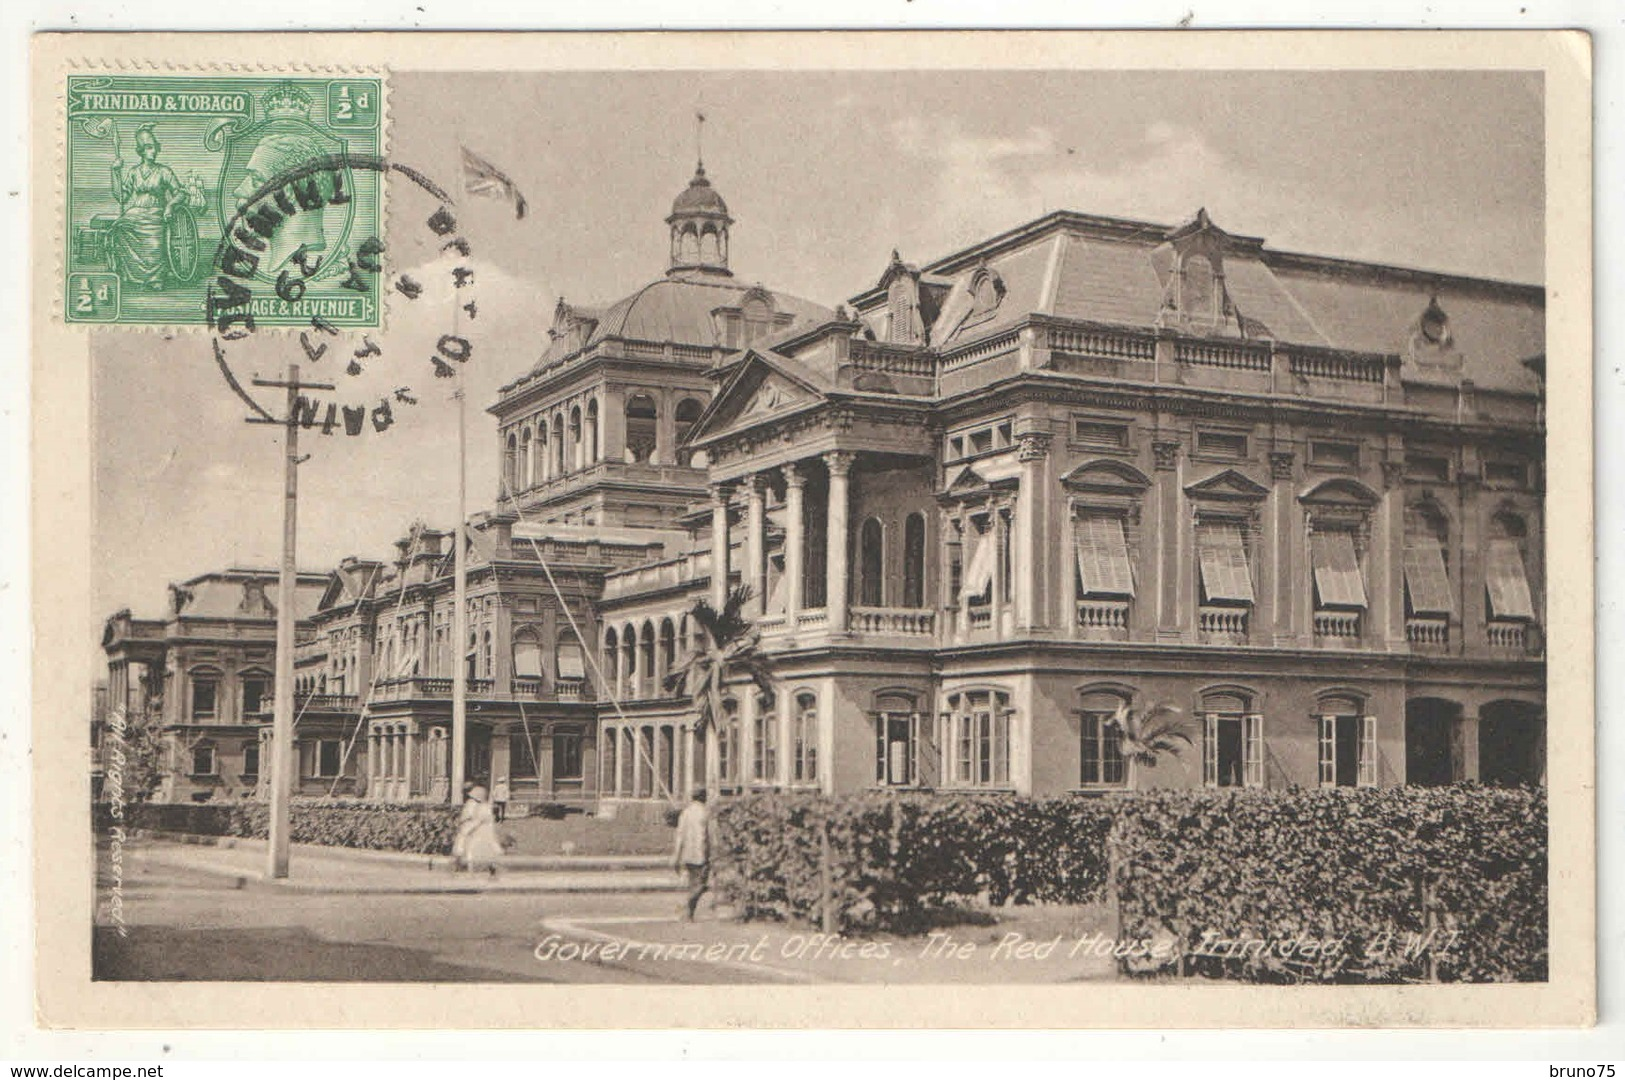 Government Offices, The Red House, Trinidad - Trinidad